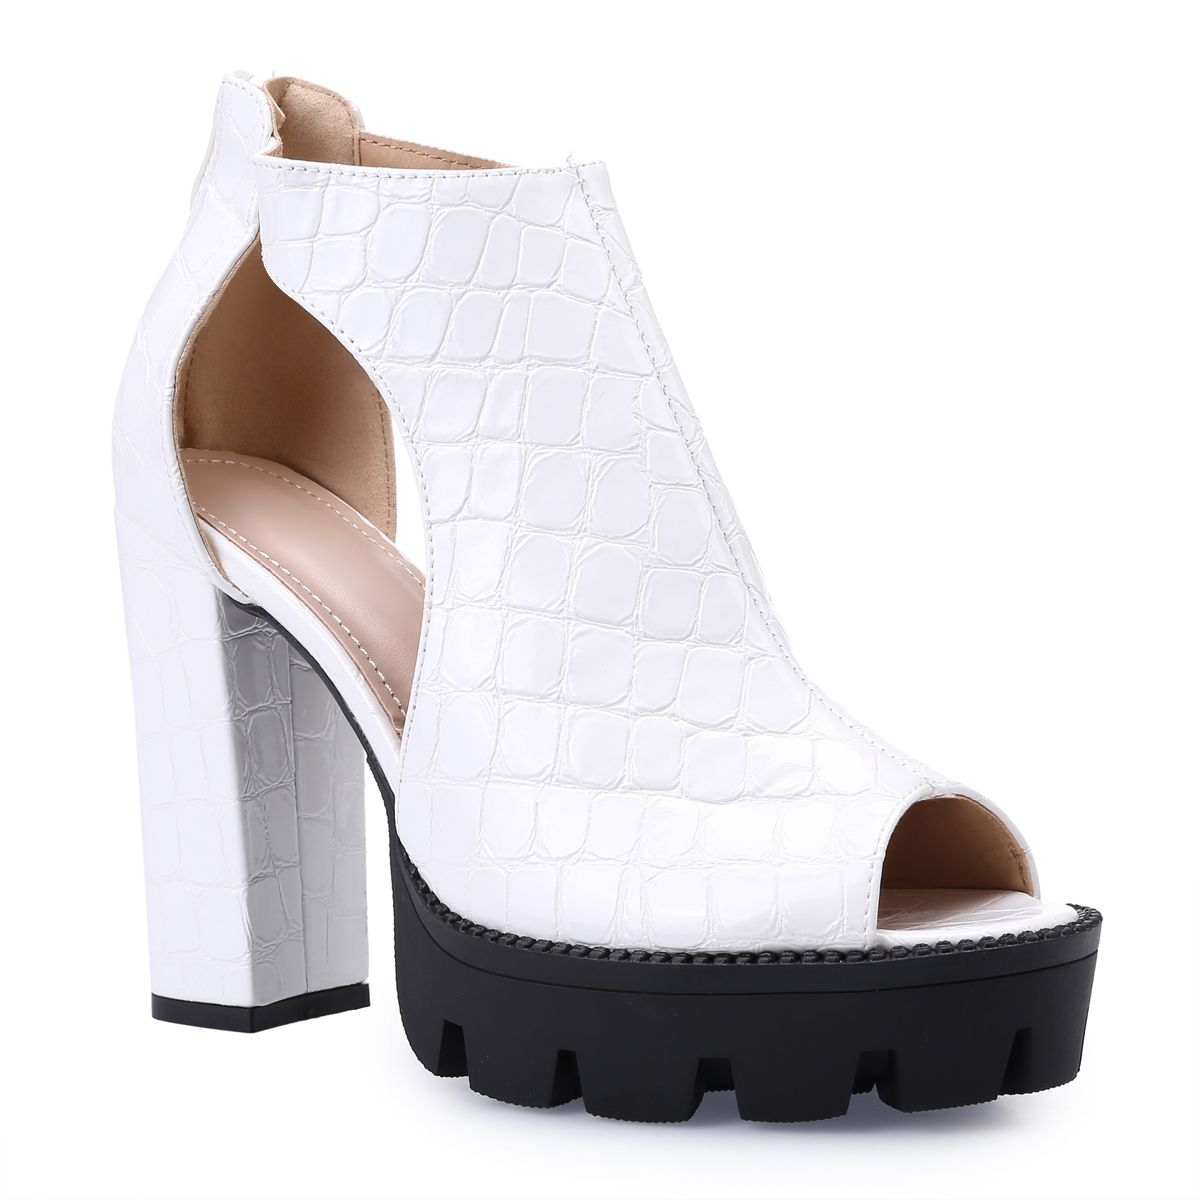 Bottines peep toes blanches à effet croco verni